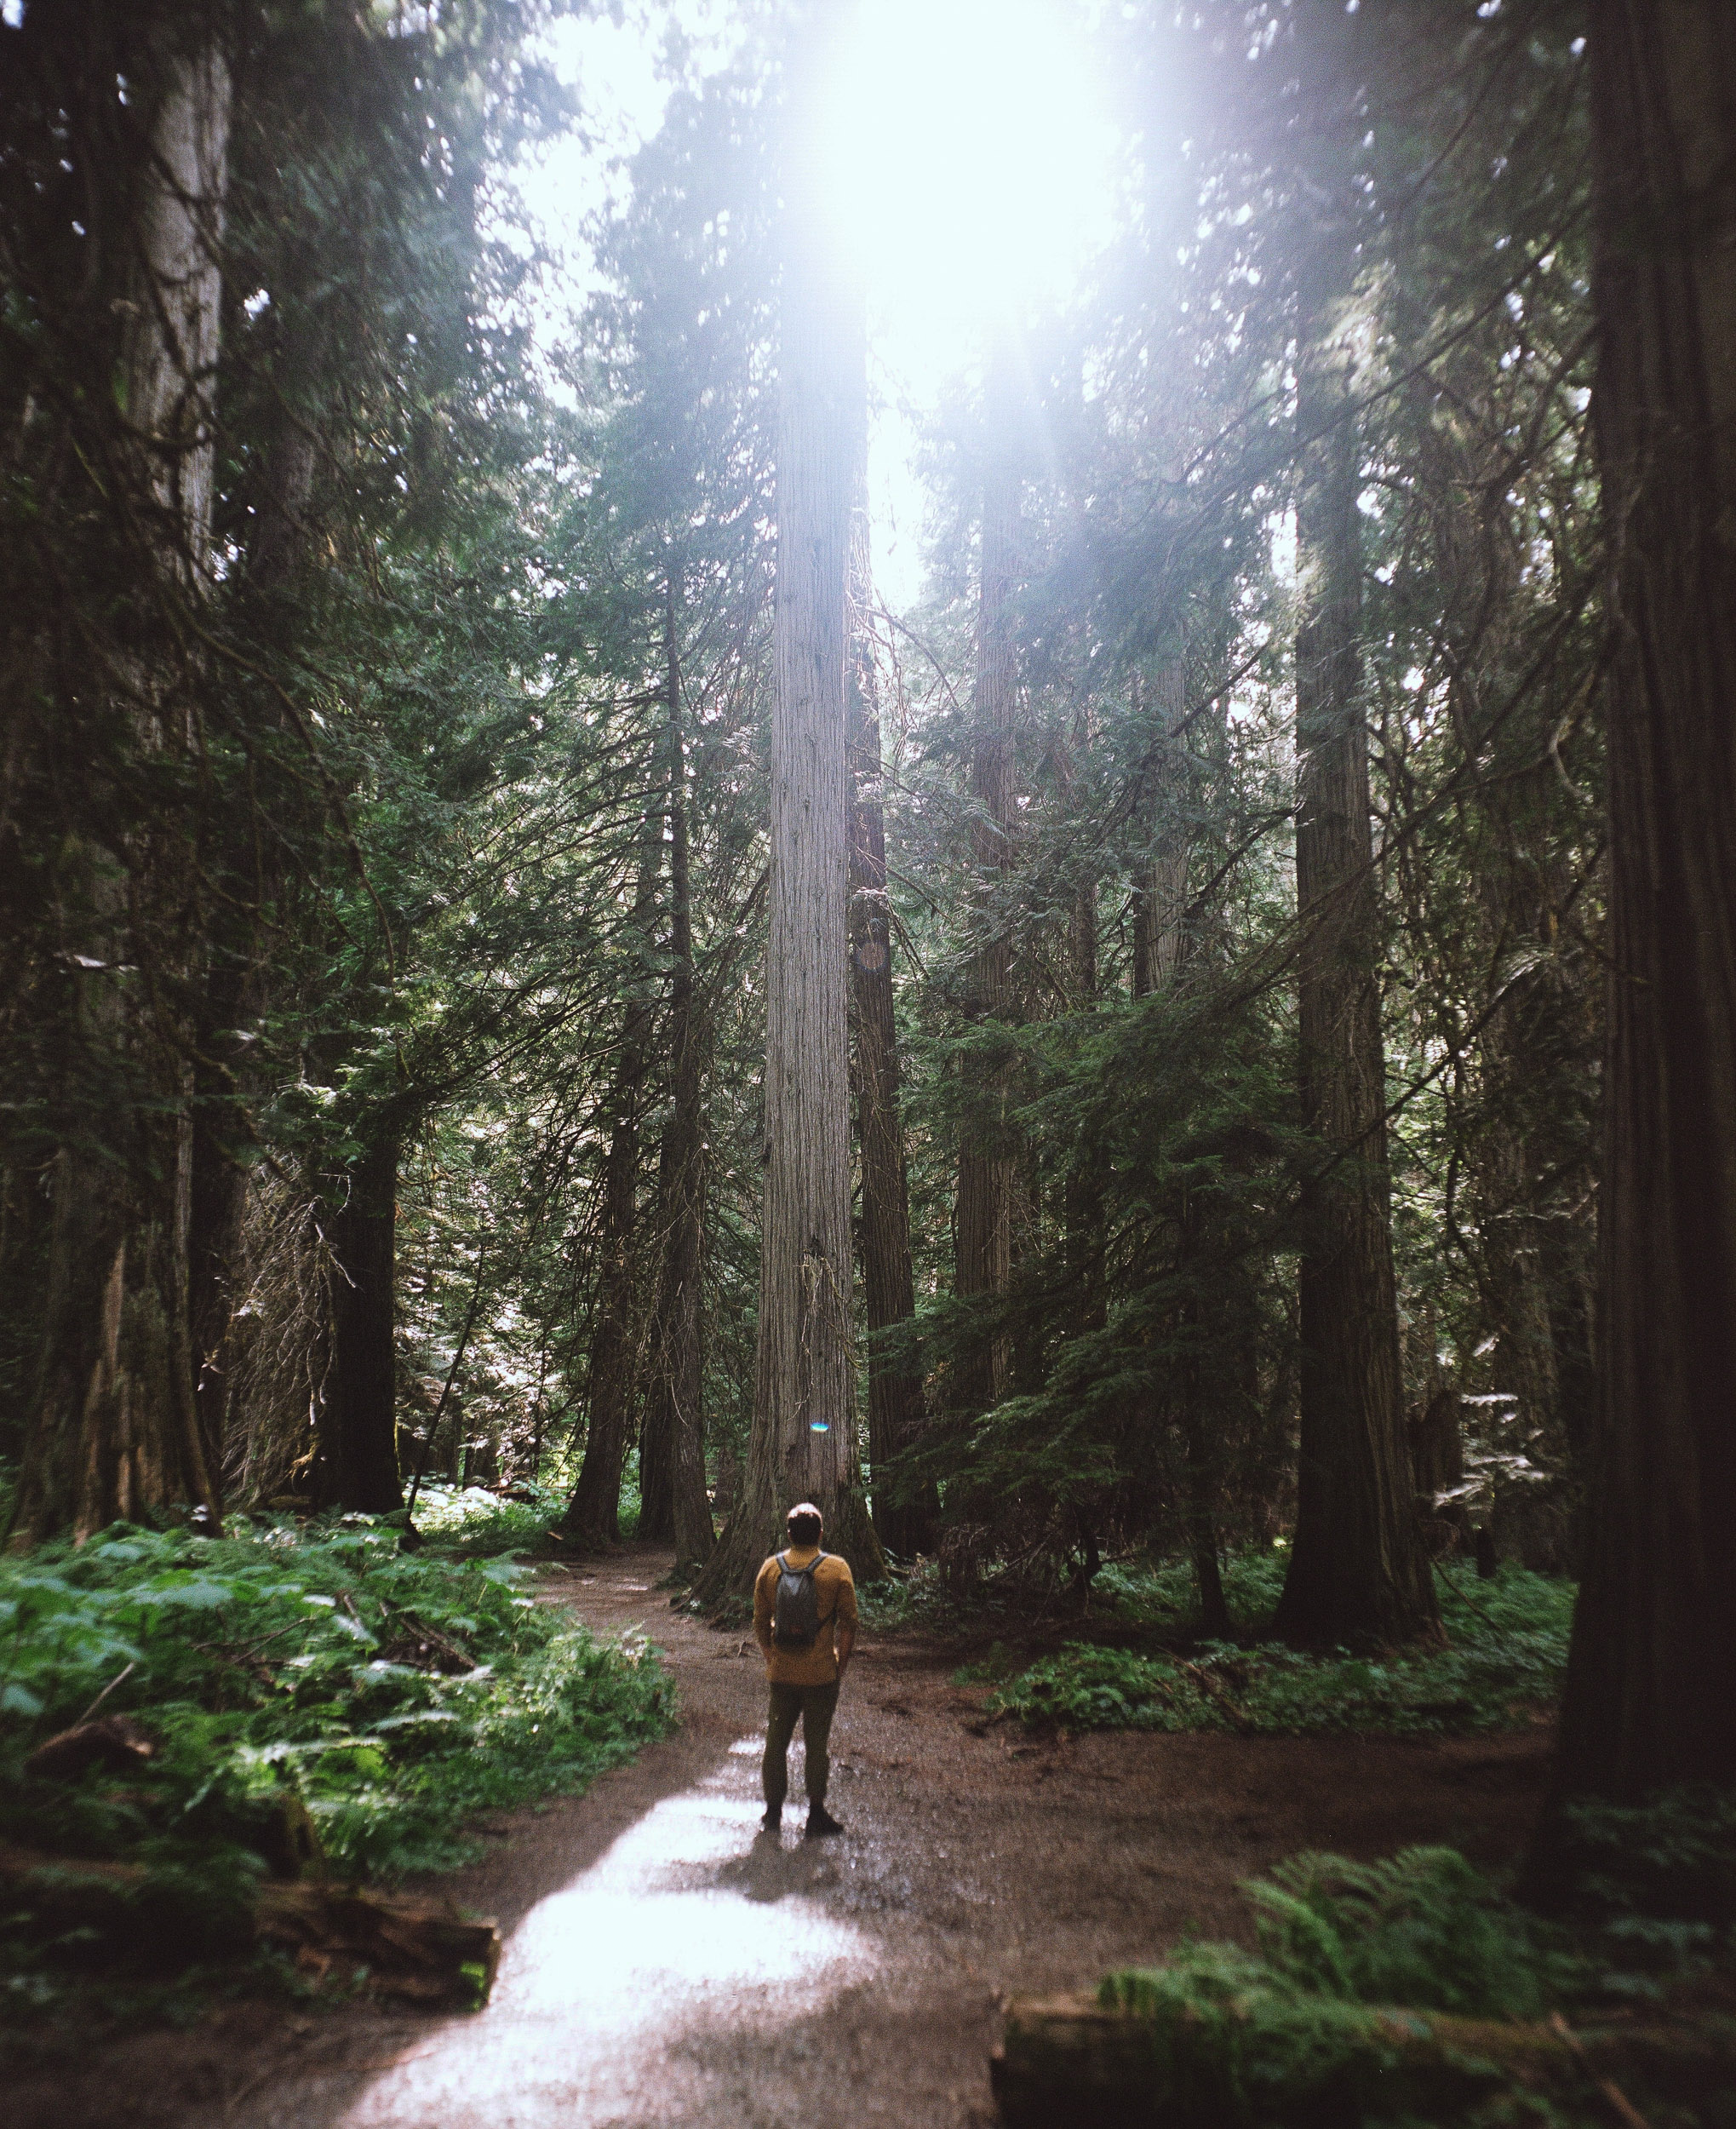 Hiker in the woods wearing a yellow shirt